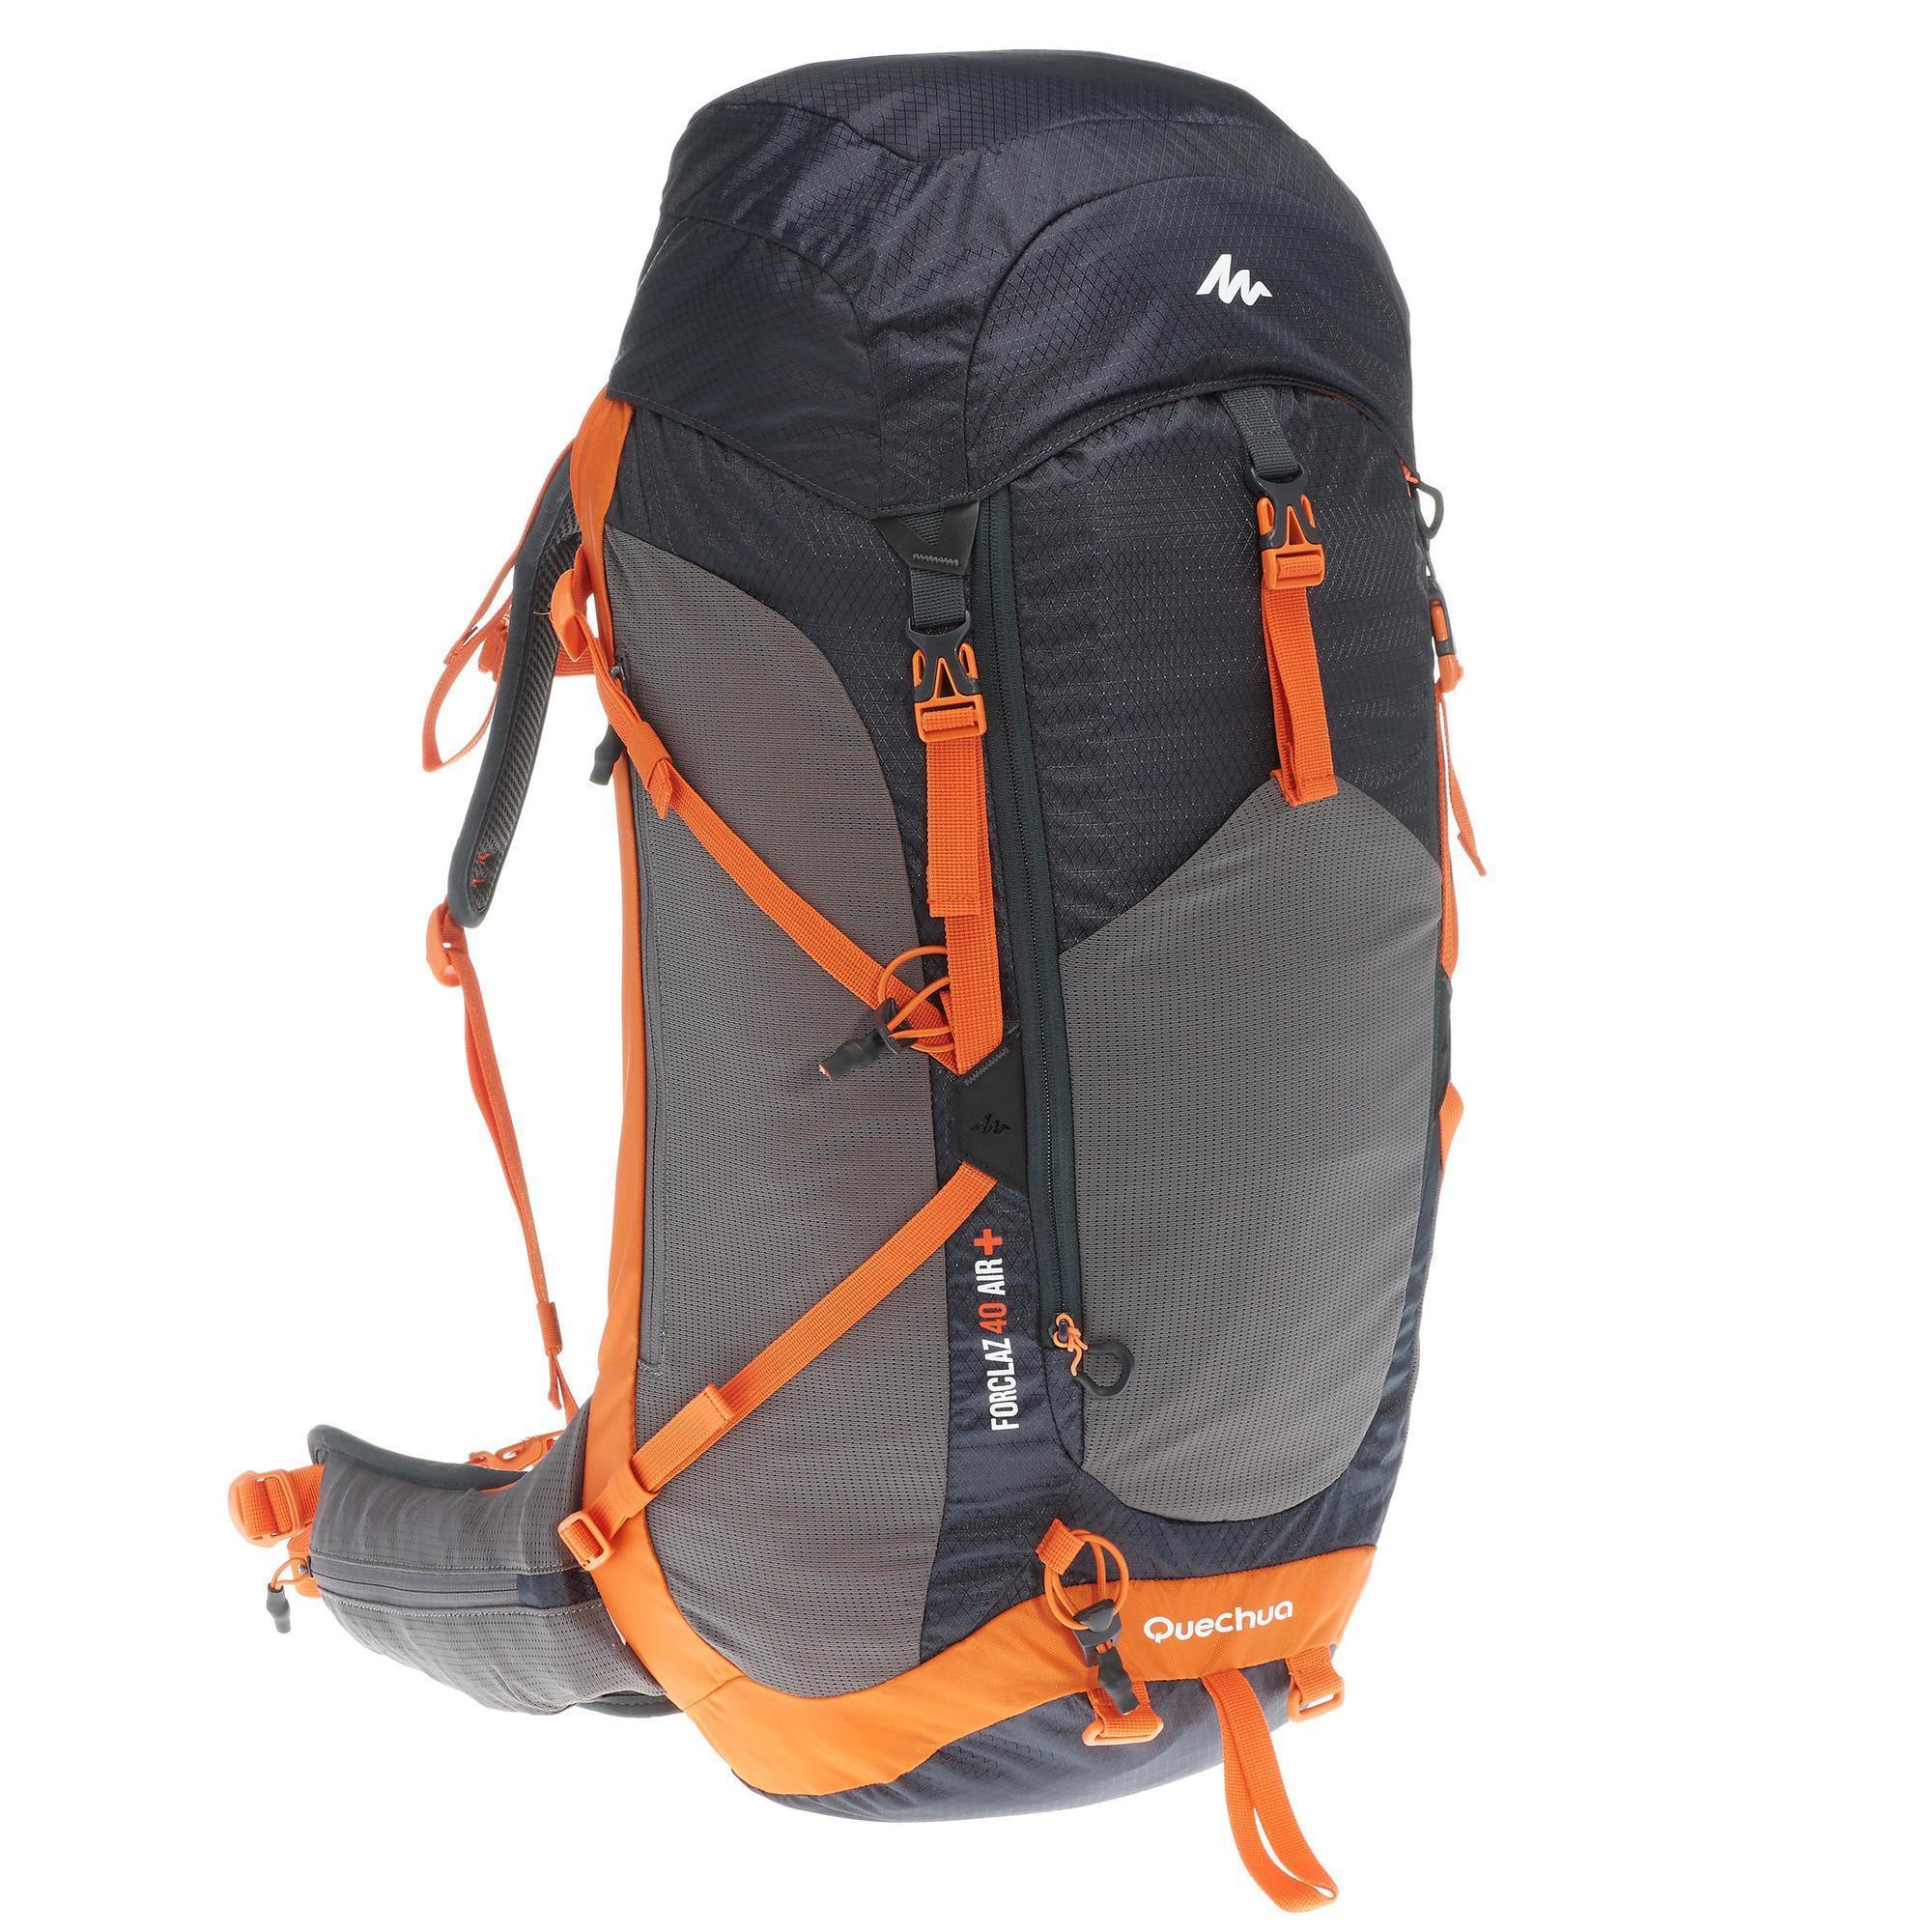 Mh500 40 L Hiking Backpack Black Orange Quechua